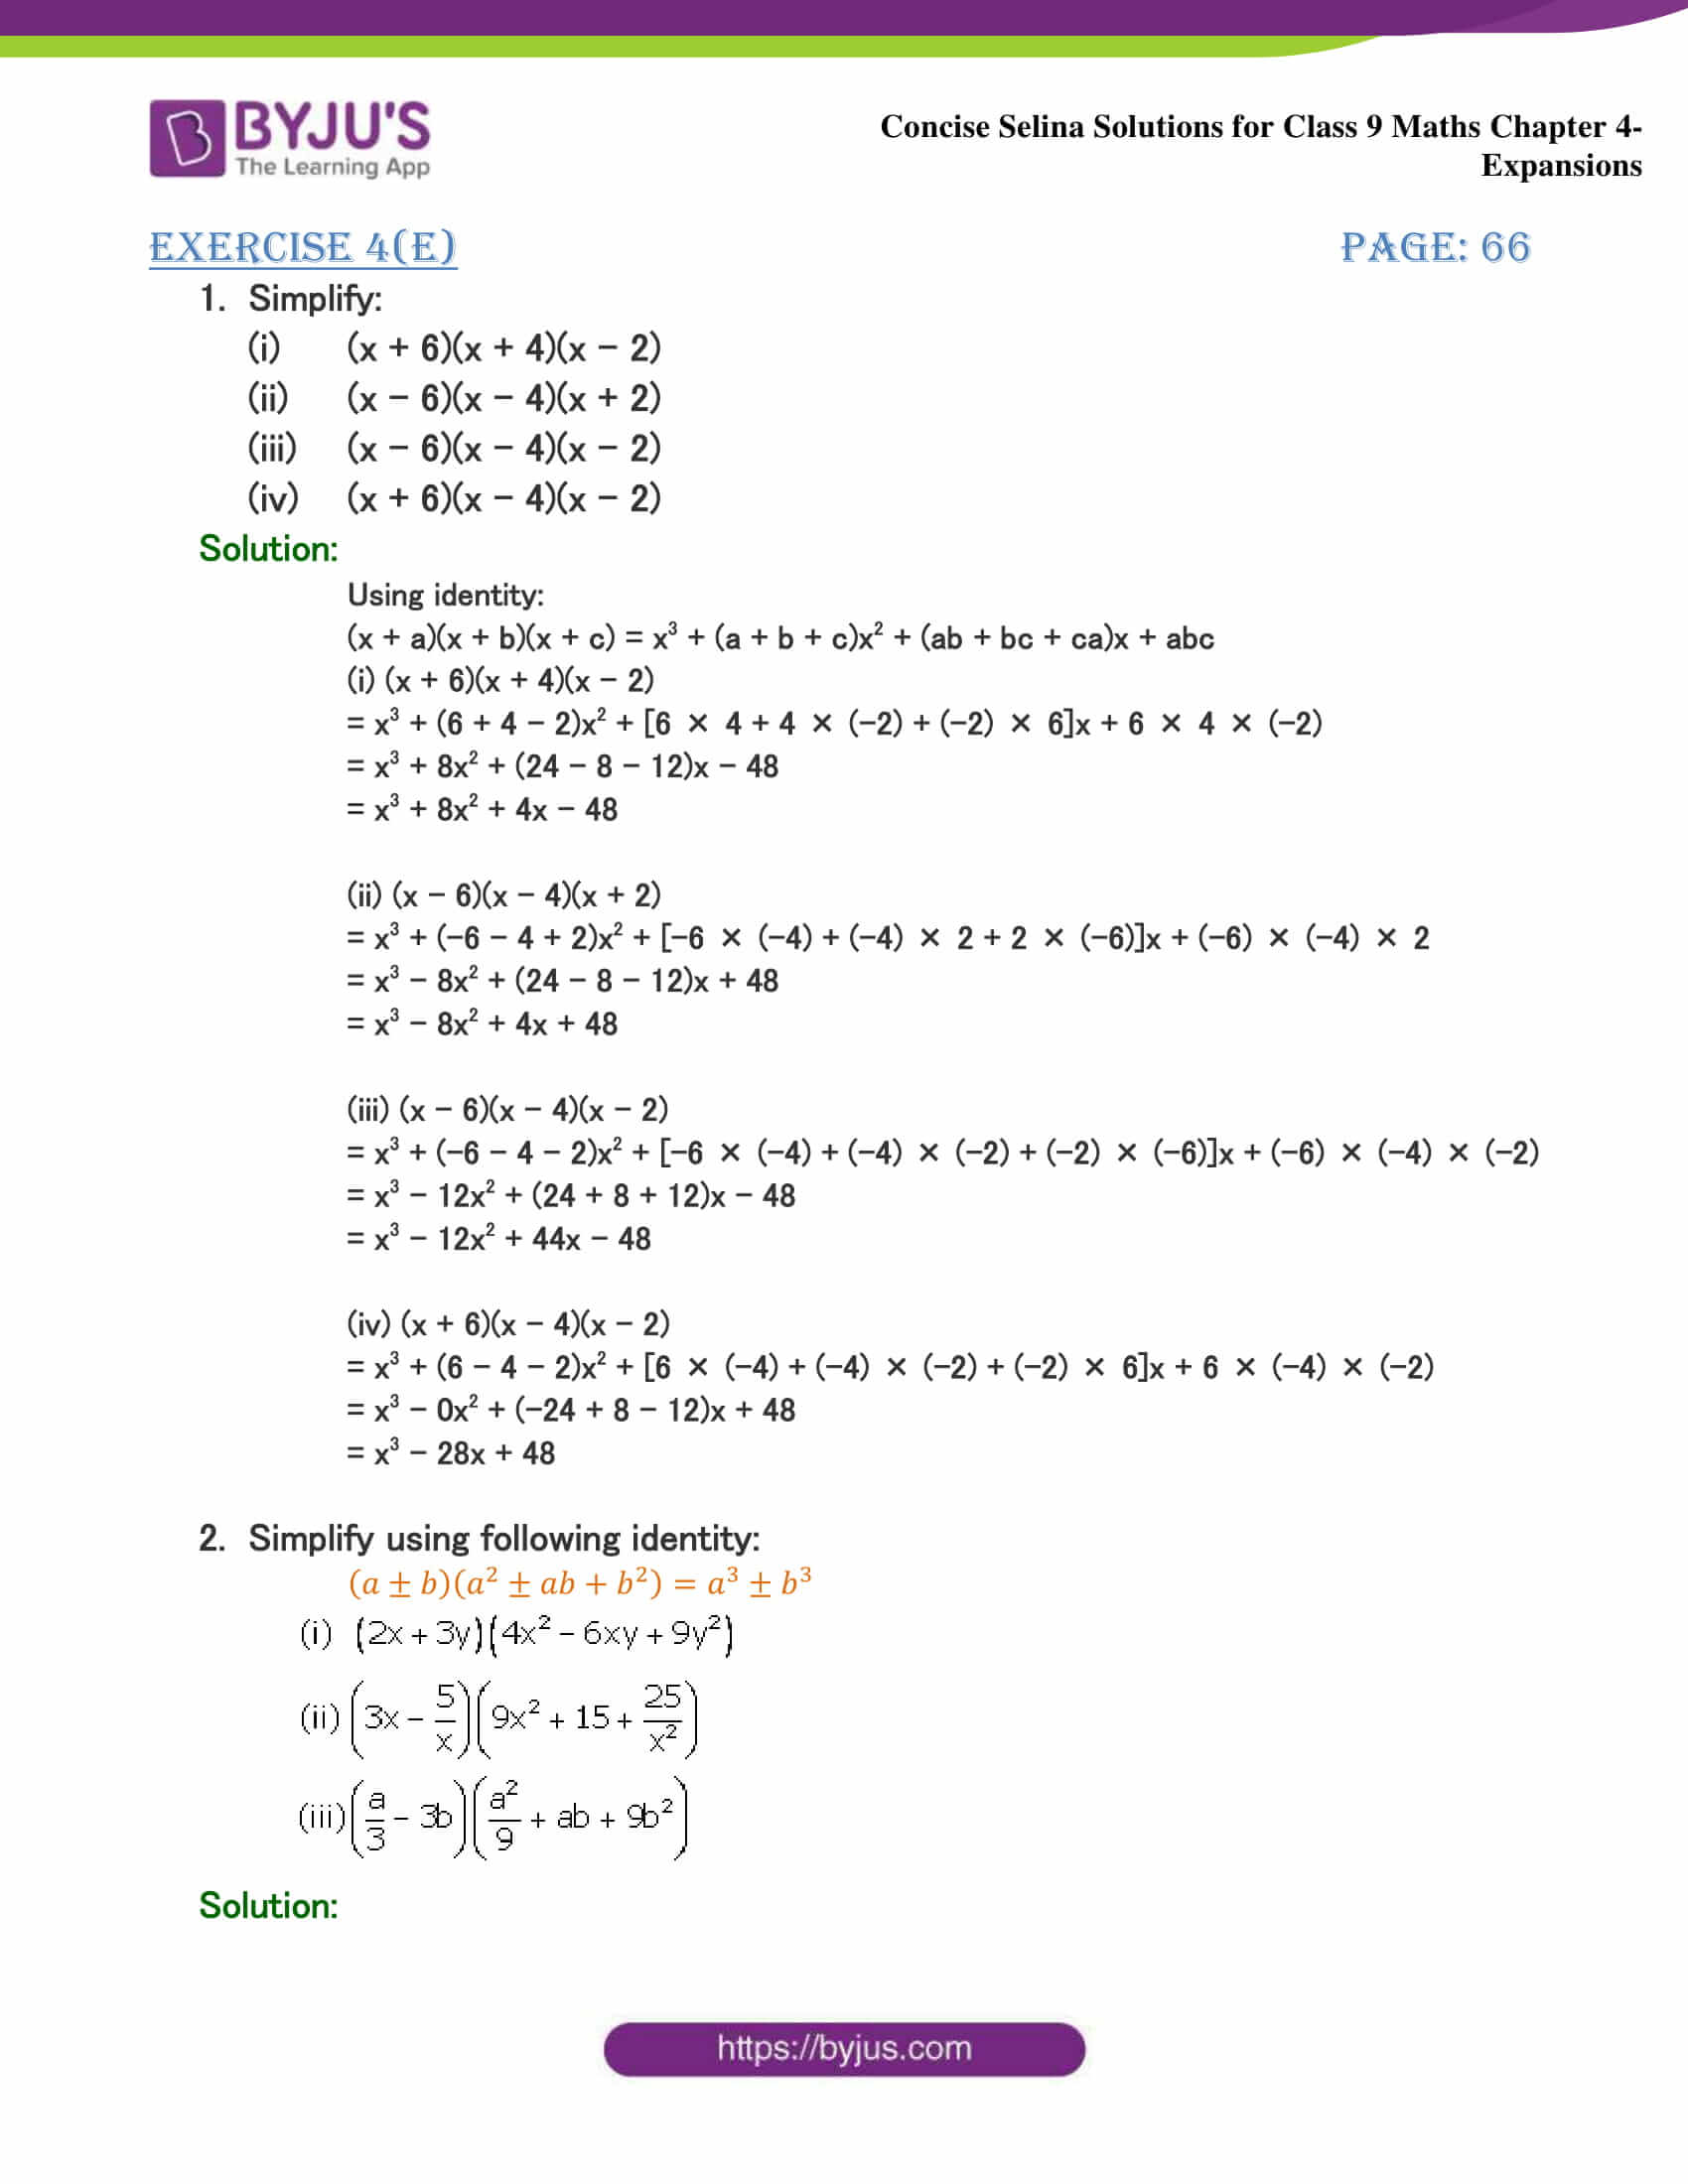 Selina Solutions Class 9 Maths Chapter 4 Expansions part 41